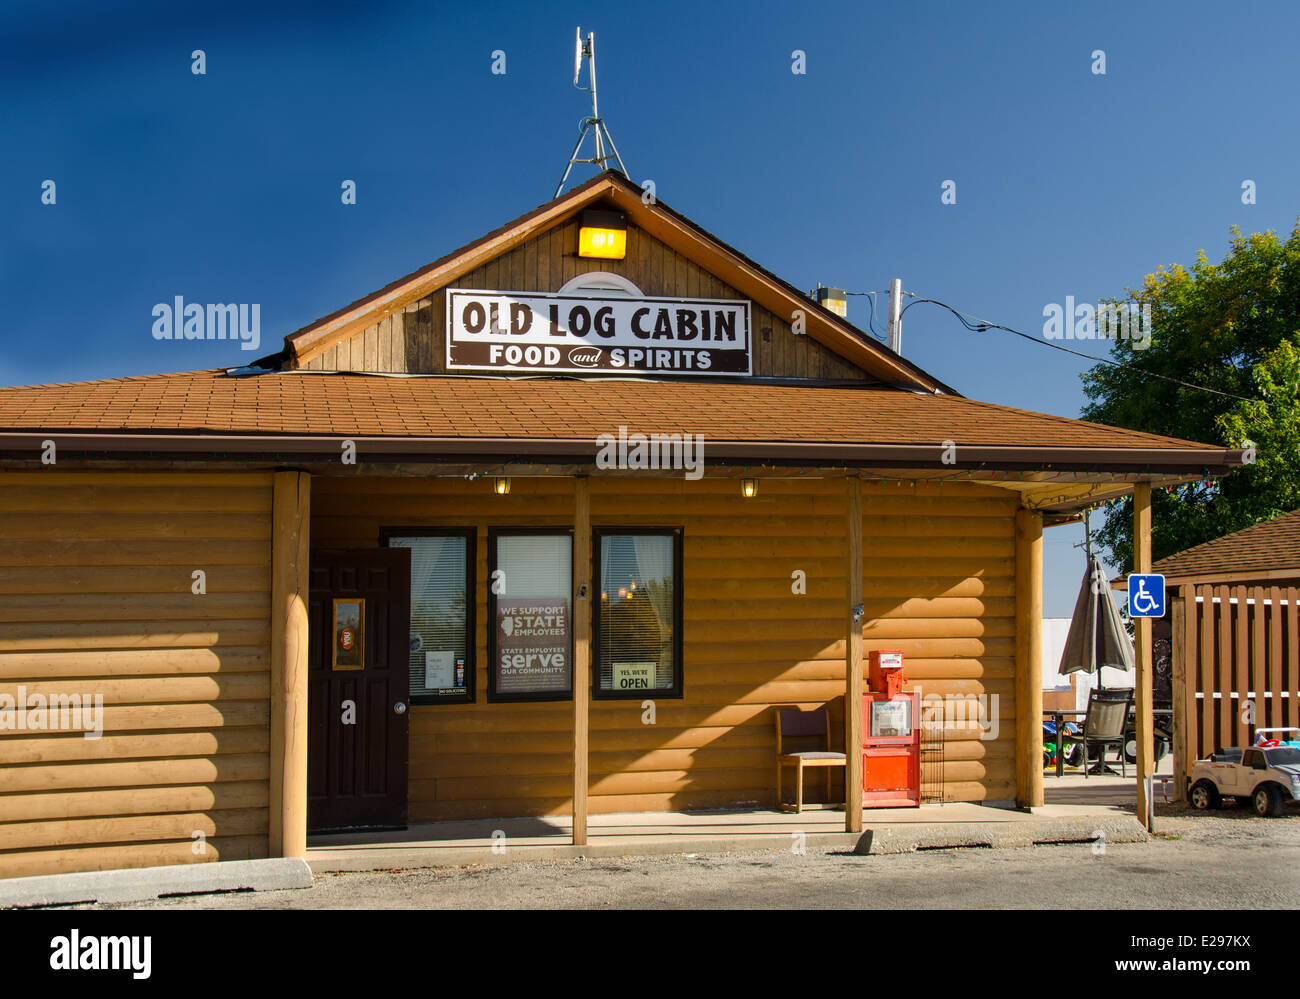 Old Log Cabin is a landmark restaurant along Route 66 in Pontiac, Illinois. Stock Photo